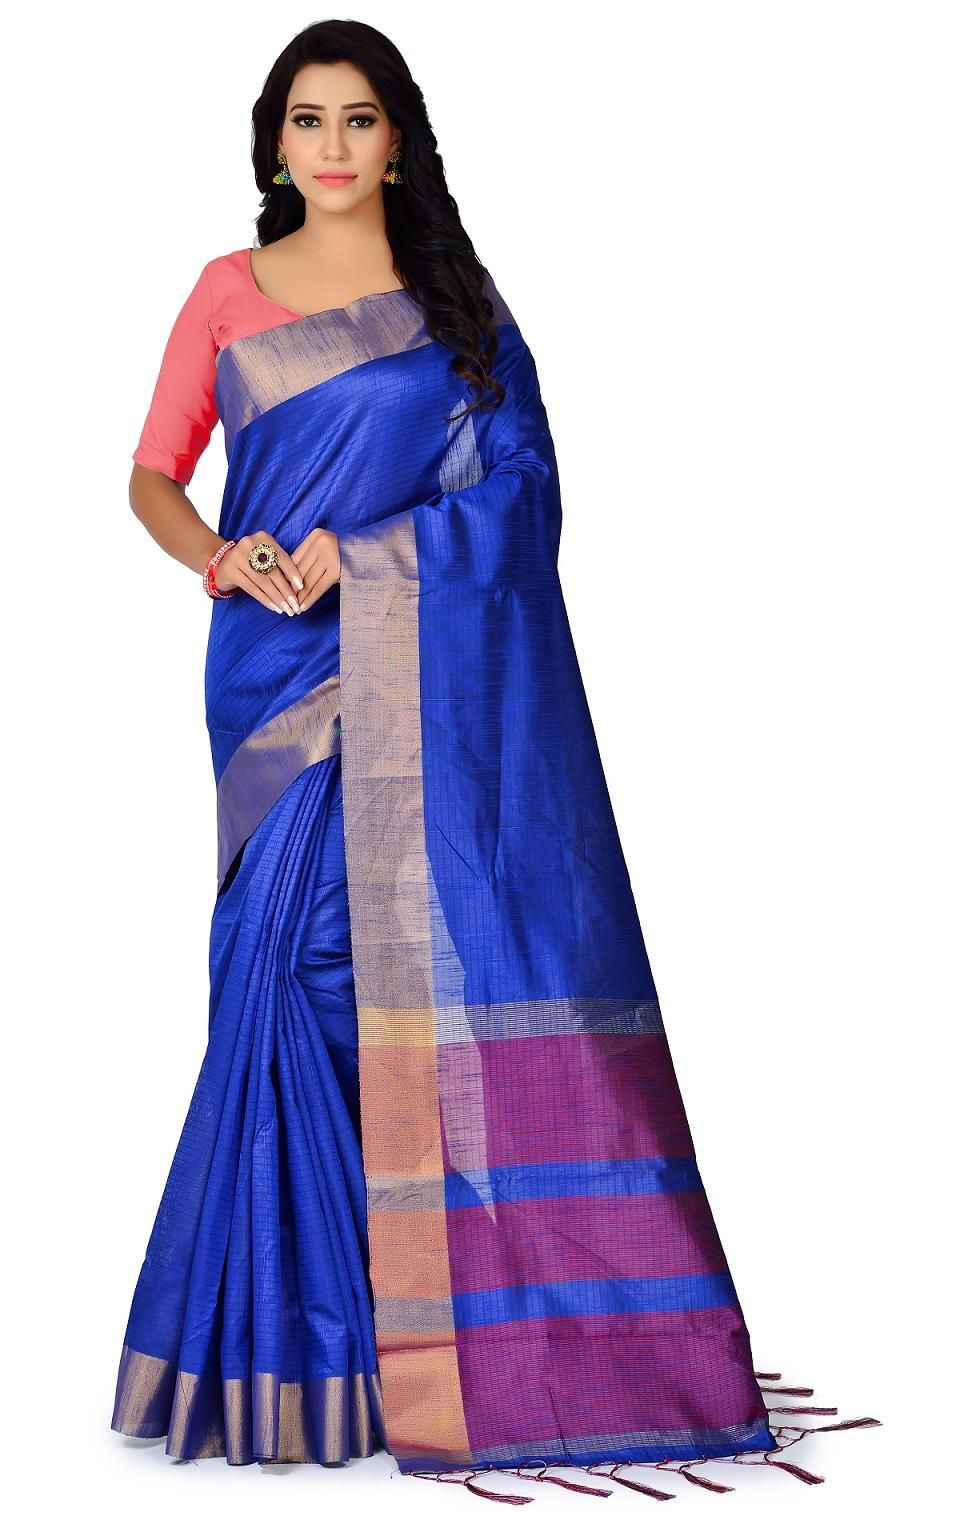 Women's Ethnic Polyester Cotton Solid With Border Regular Royal Blue Saree